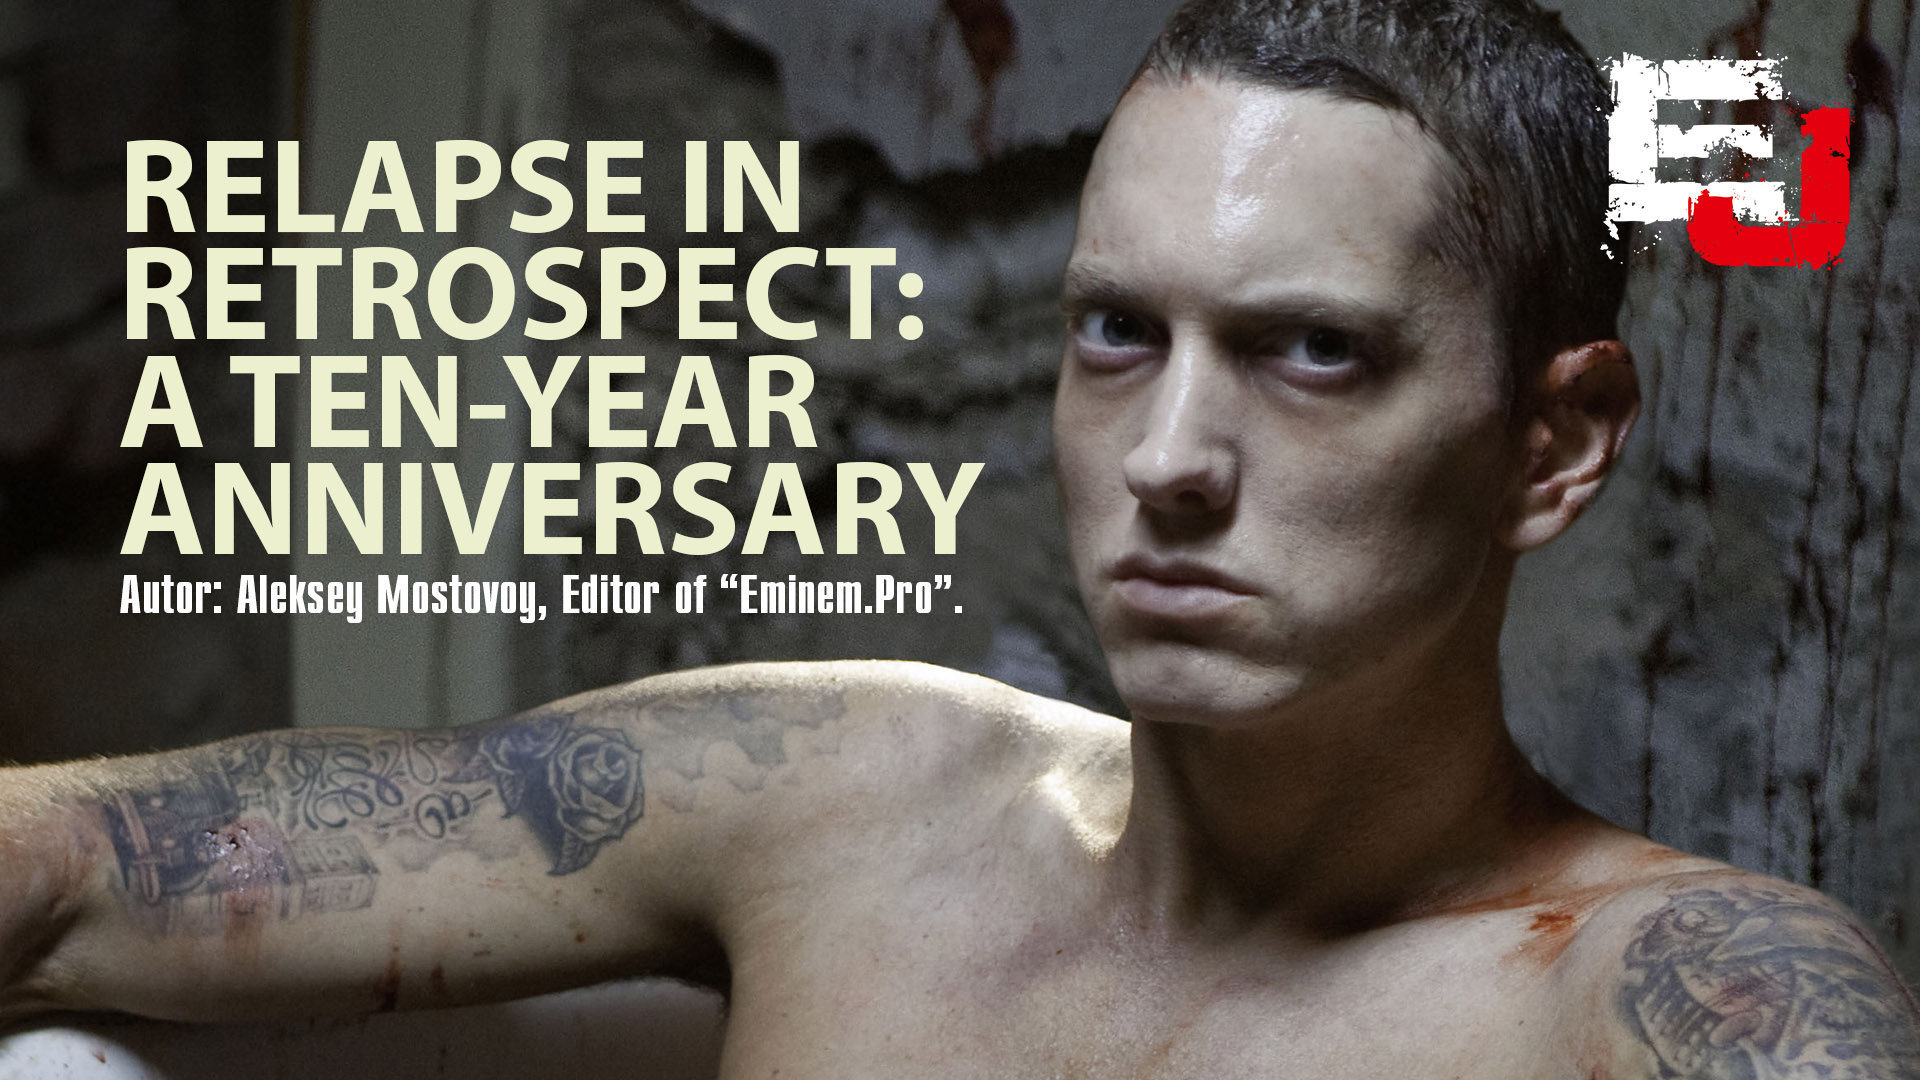 Relapse in Retrospect: a Ten-Year Anniversary